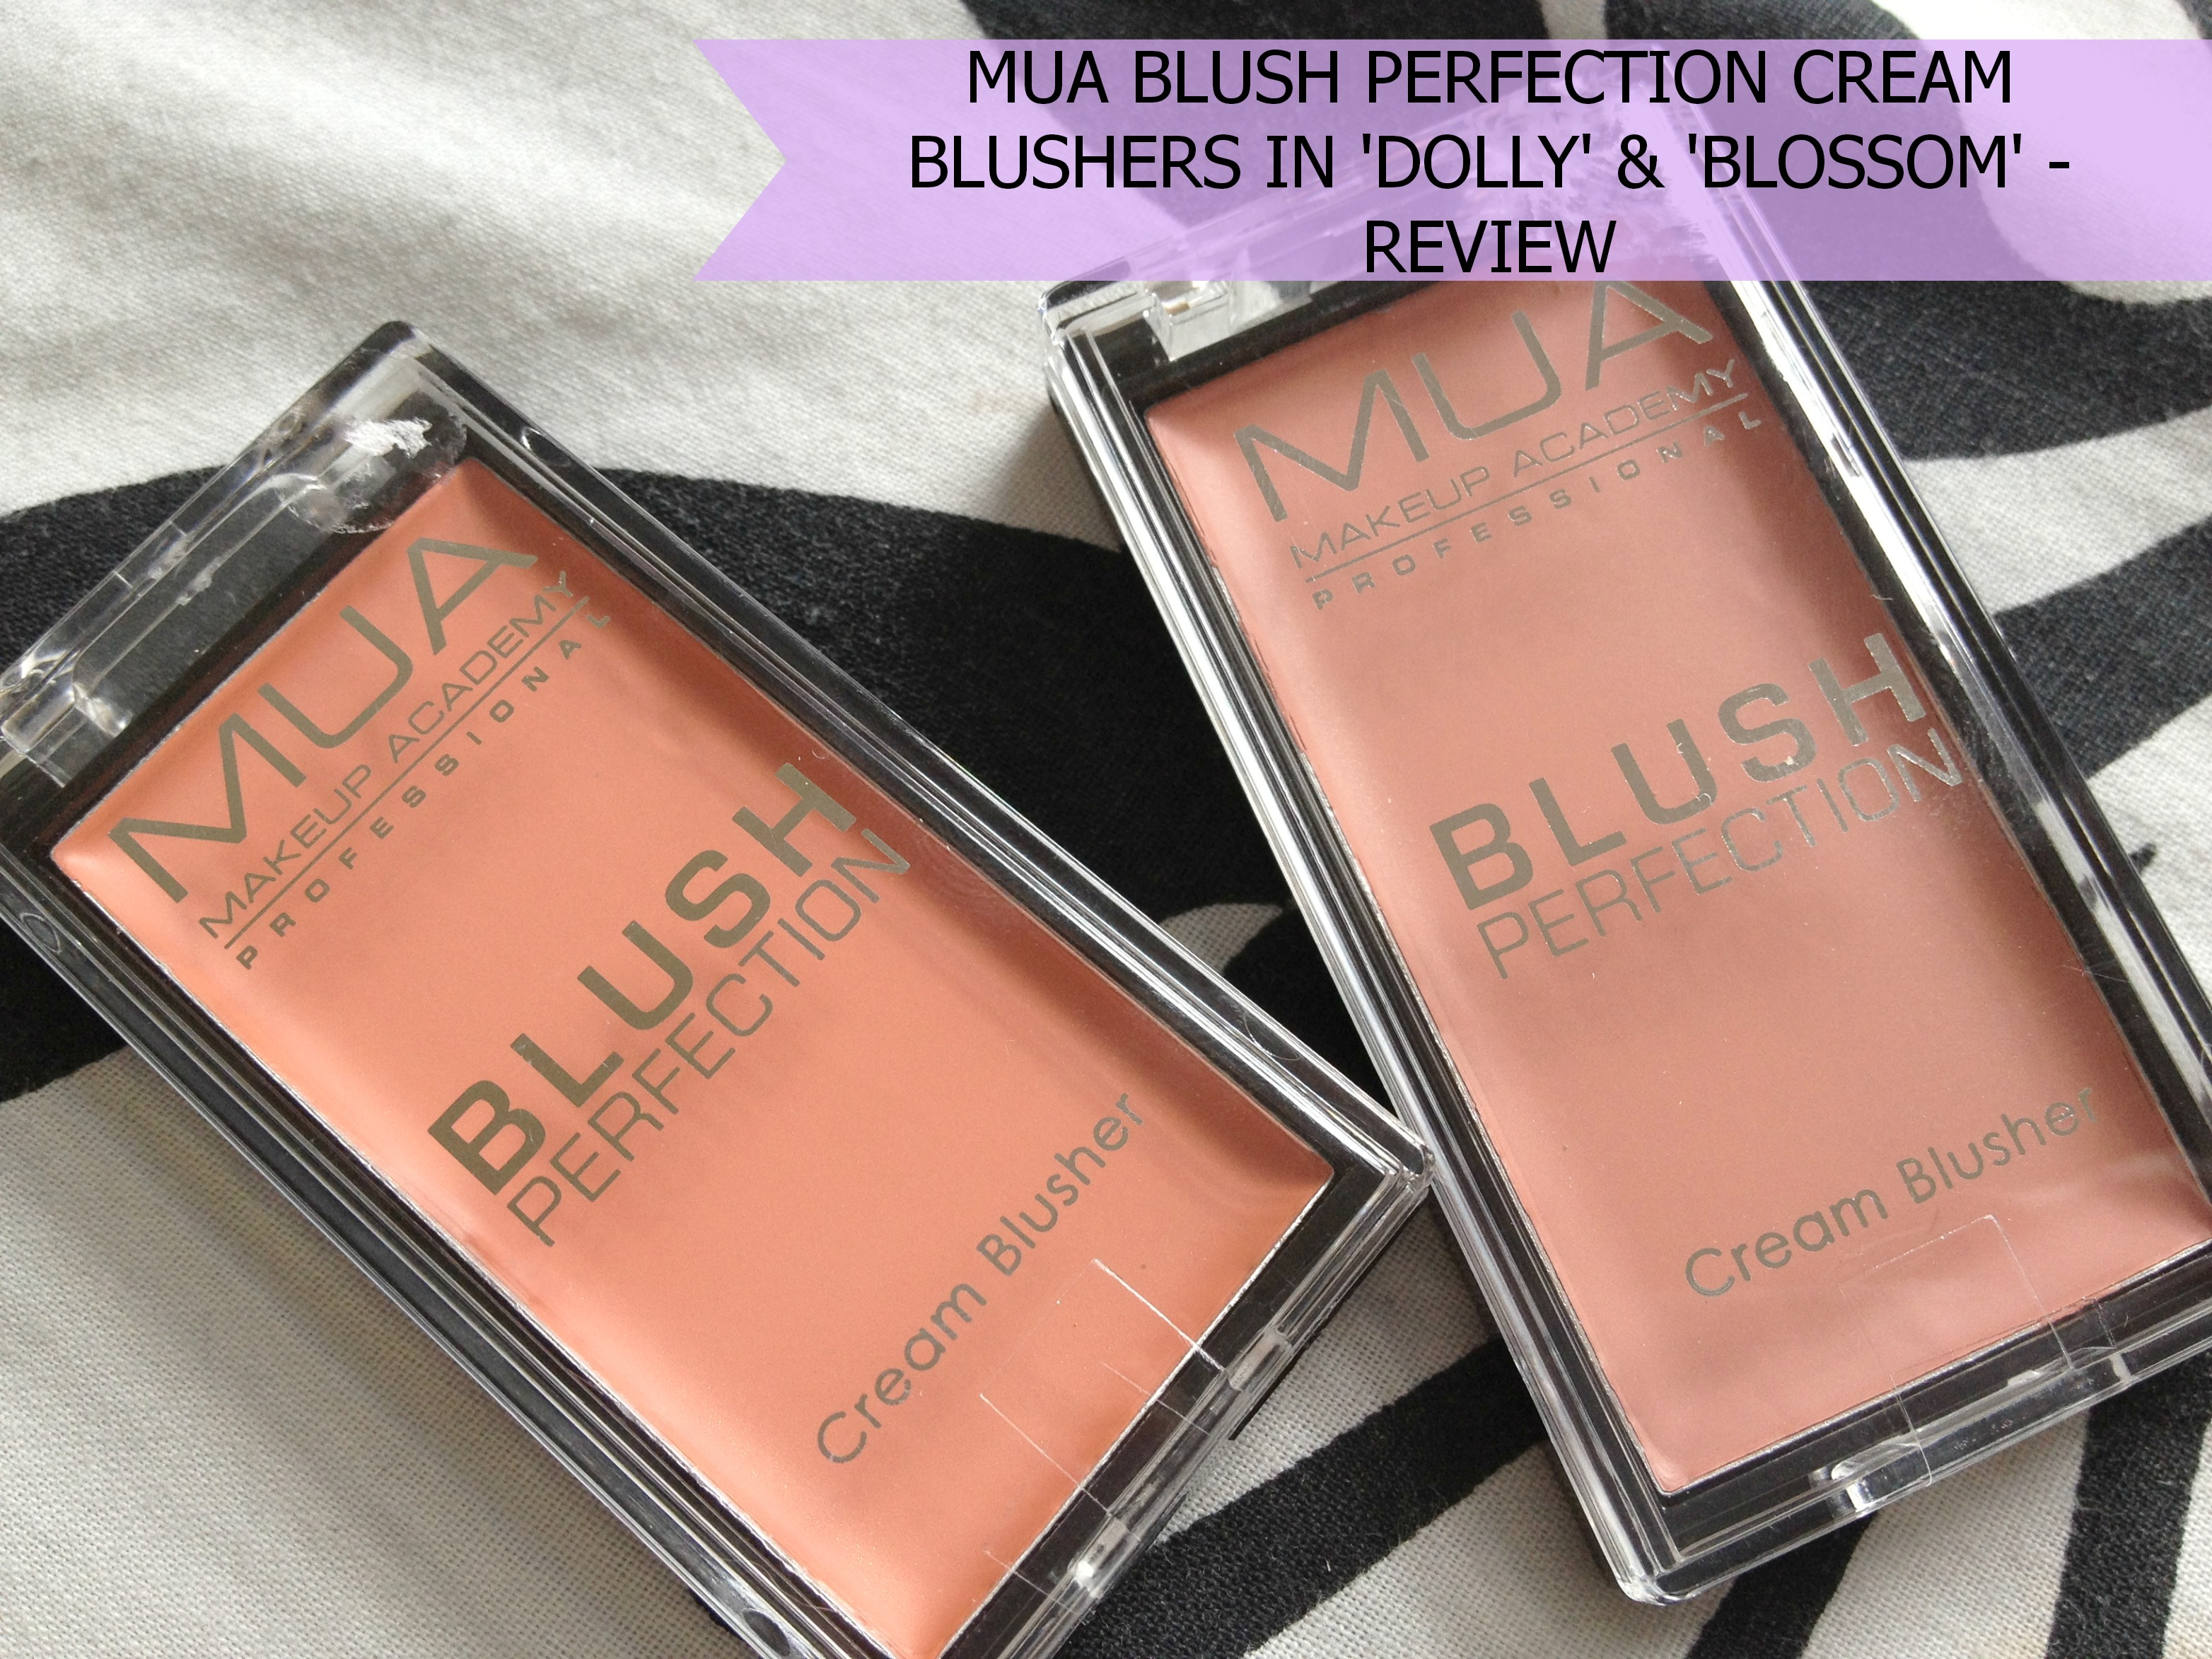 MUA_Blush_Perfection_Cream_Blushers_'Dolly'_'Blossom' (4)